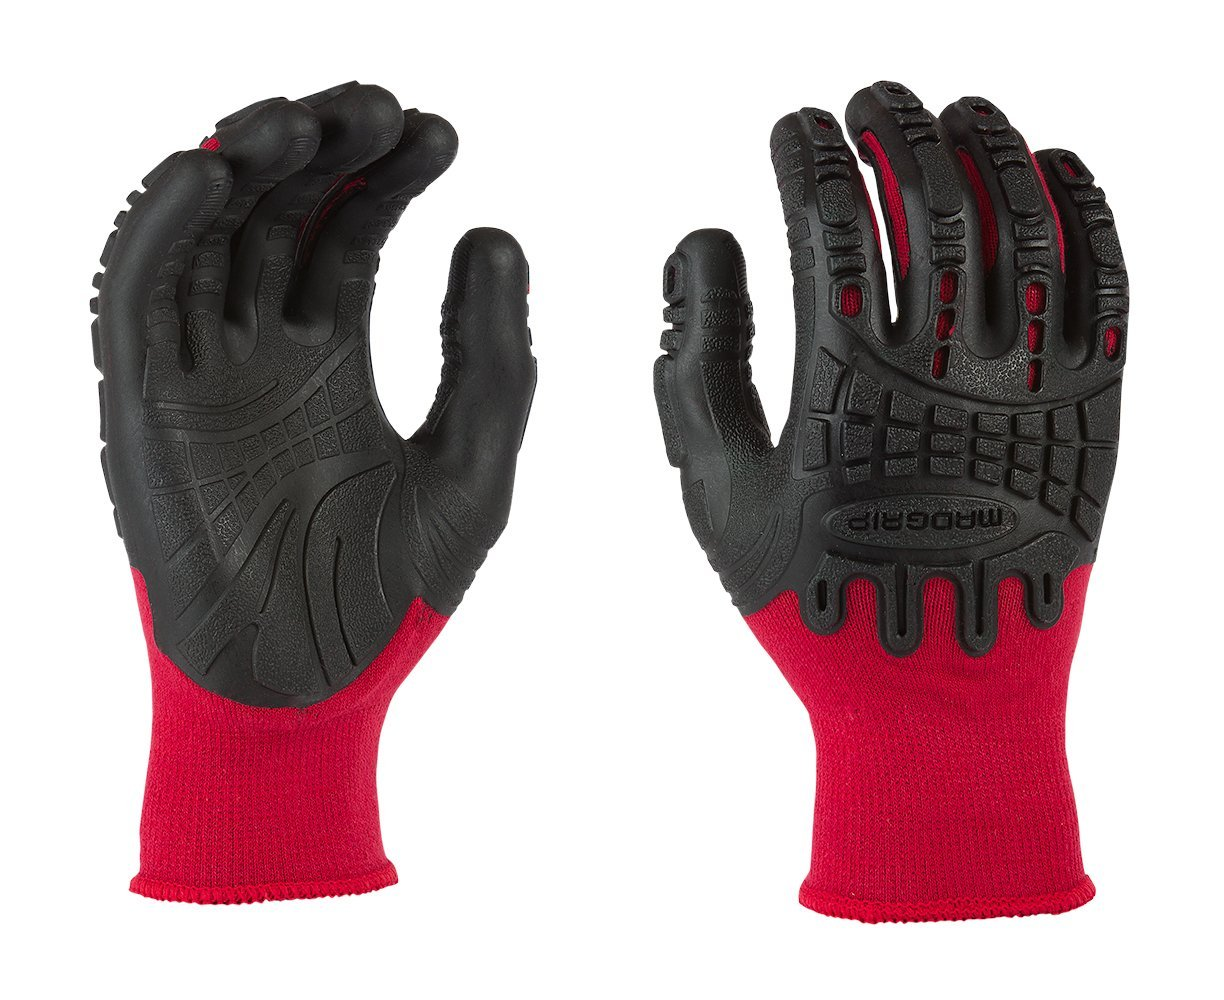 Mad Grip F50 Thunderdome Impact Gloves